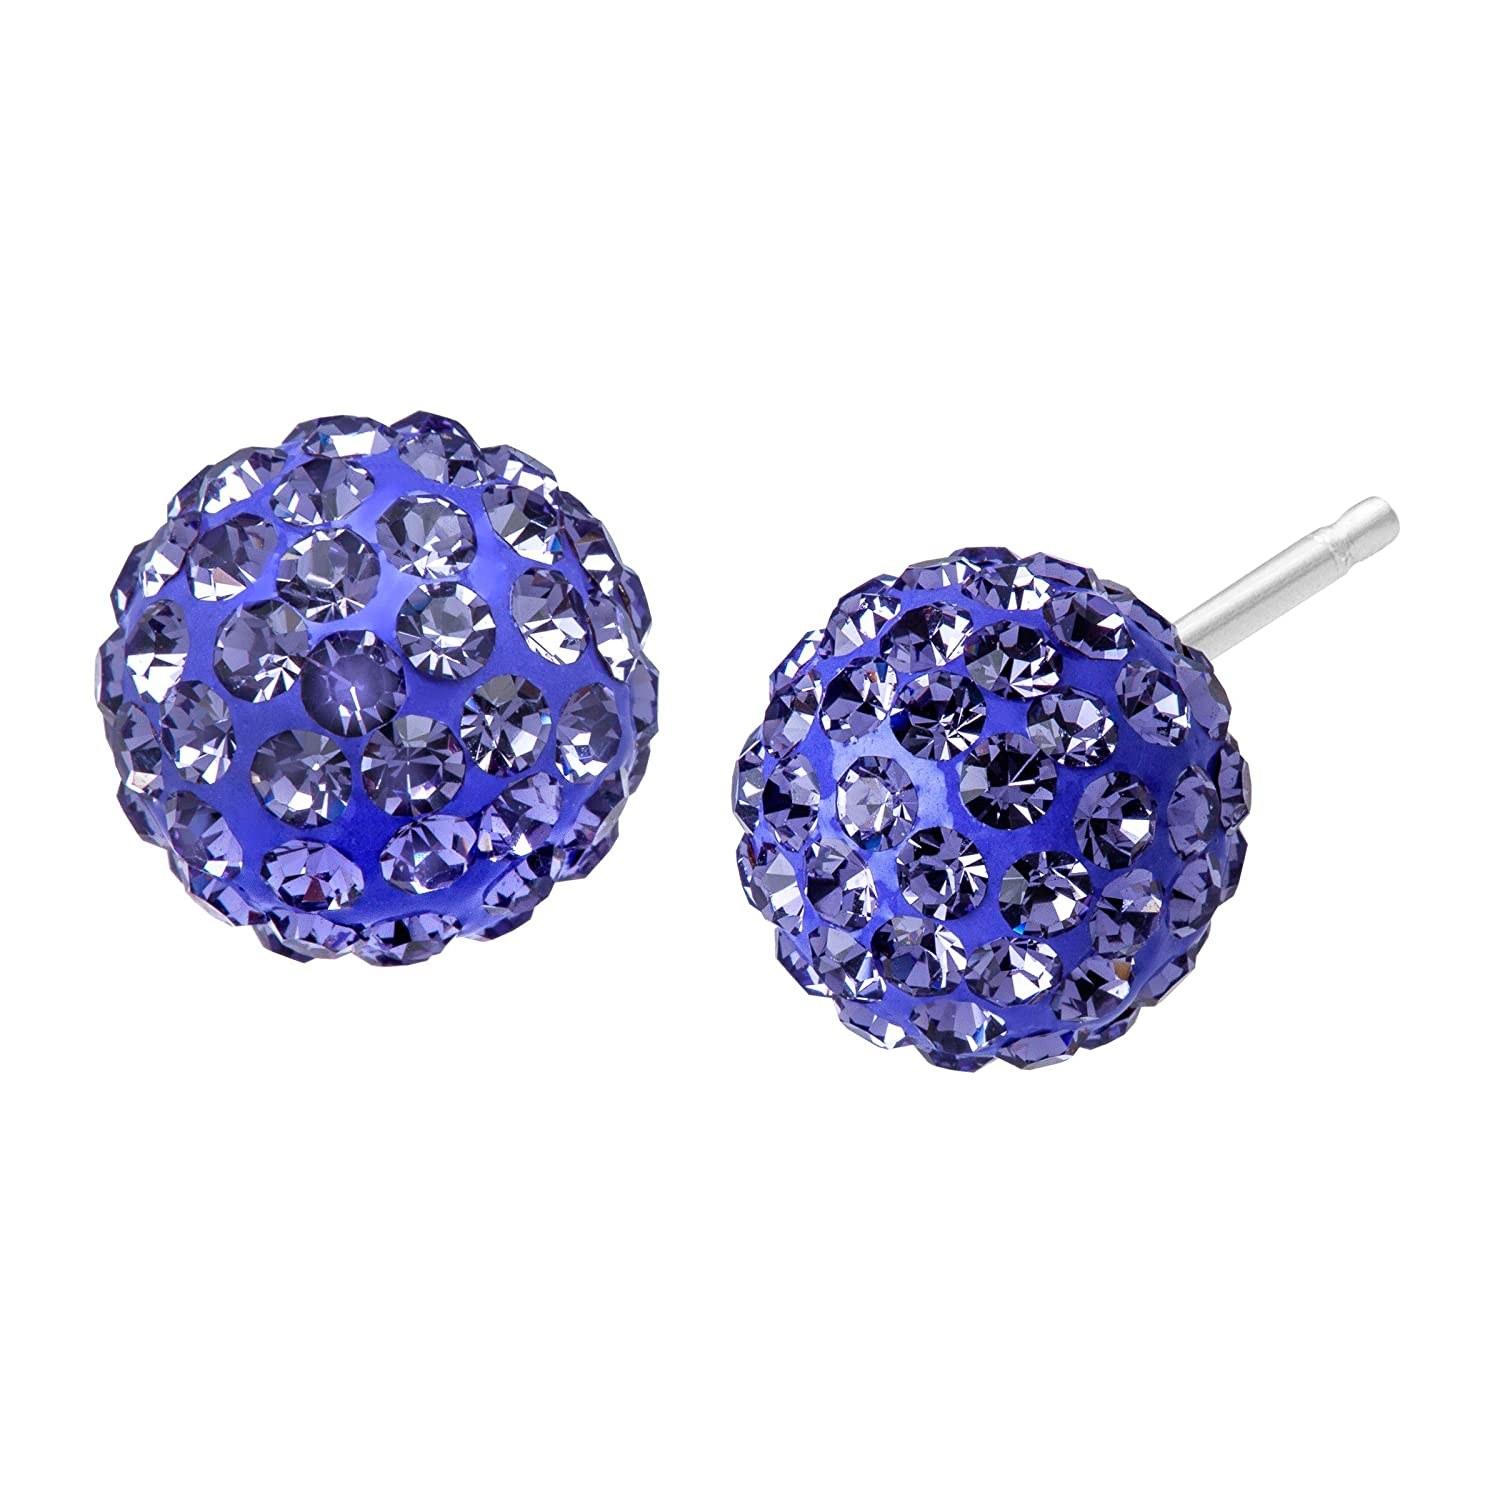 Glitter Ball Stud Earrings with Lavender Swarovski Crystal in Sterling Silver Crystaluxe Richline Group H7/C36